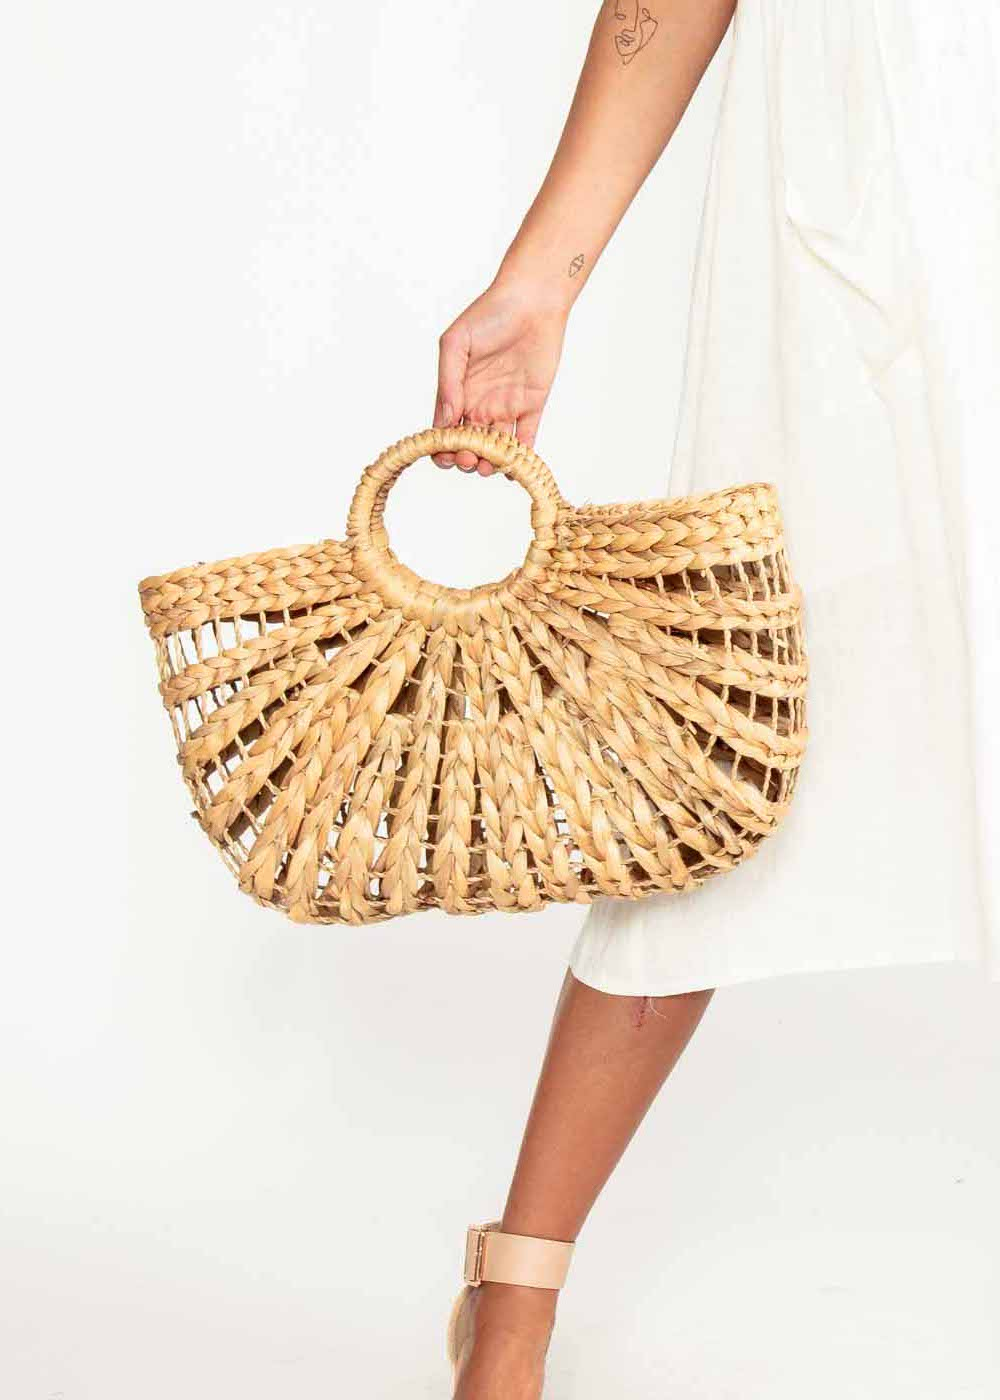 Palermo Straw Bag - Natural